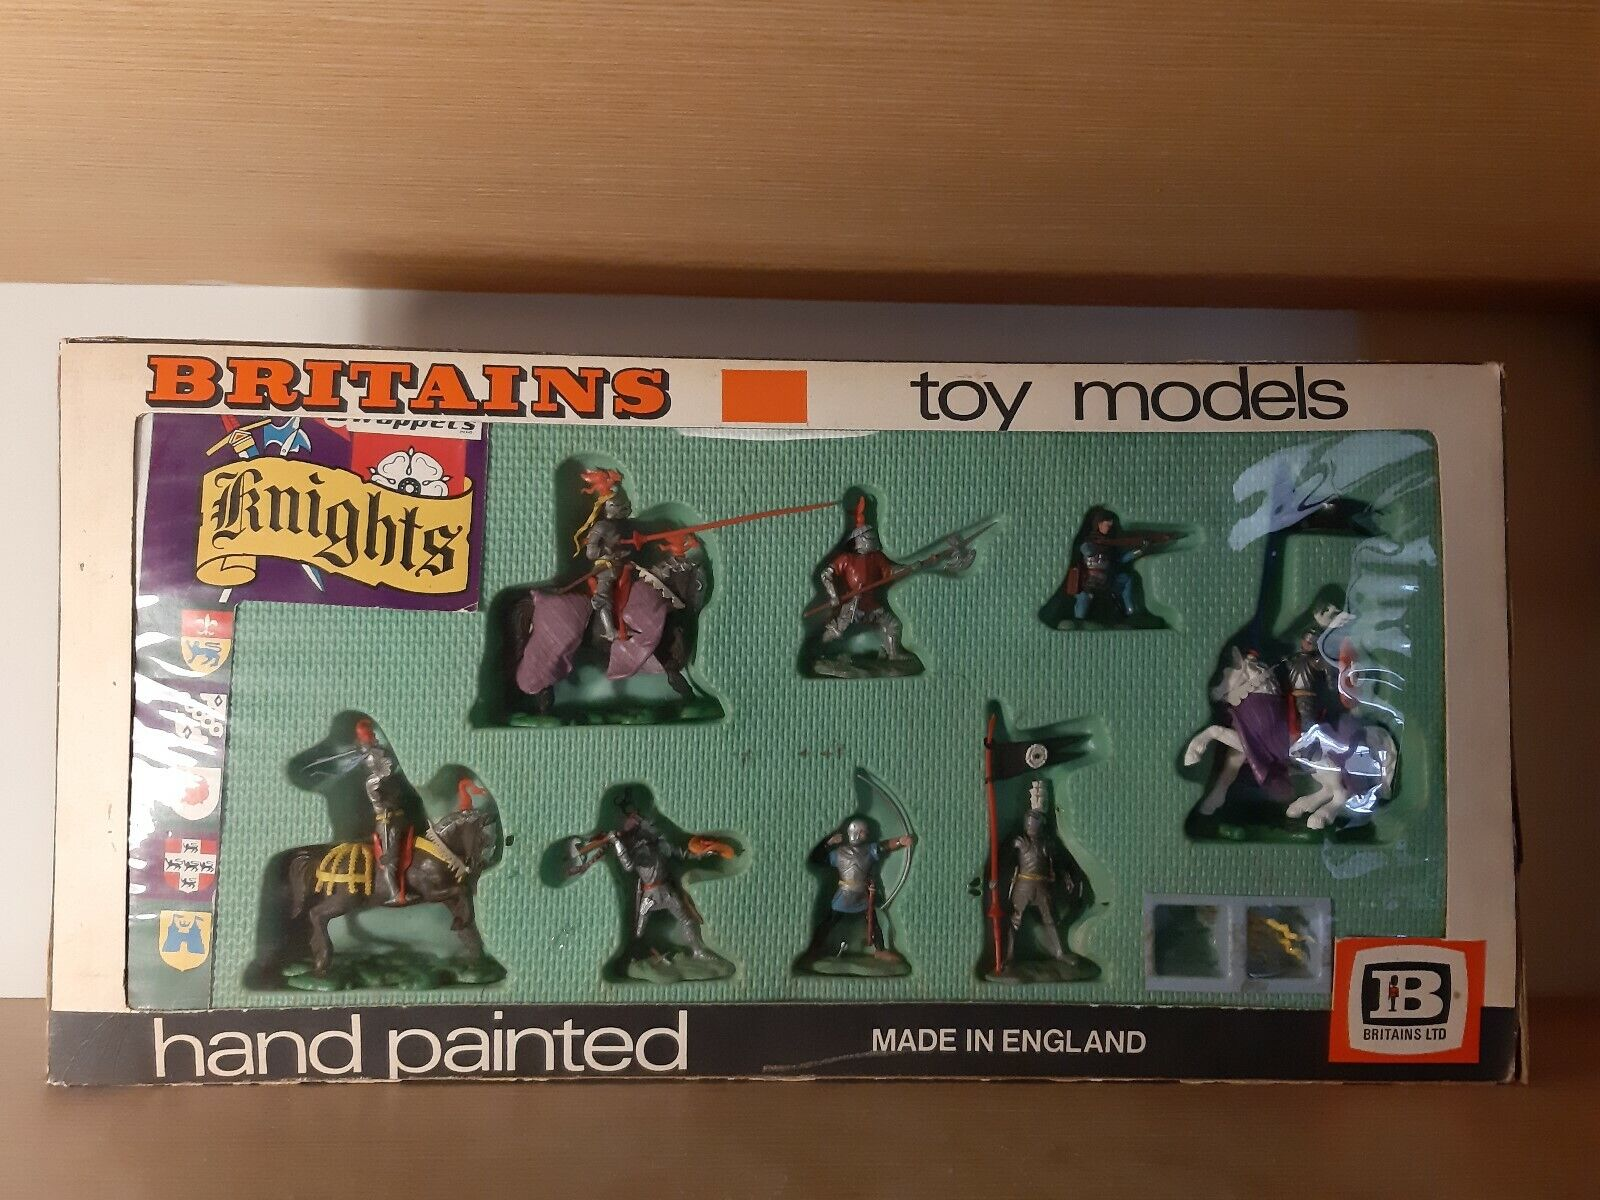 RARE BRITAINS Knights - hand painted toy models